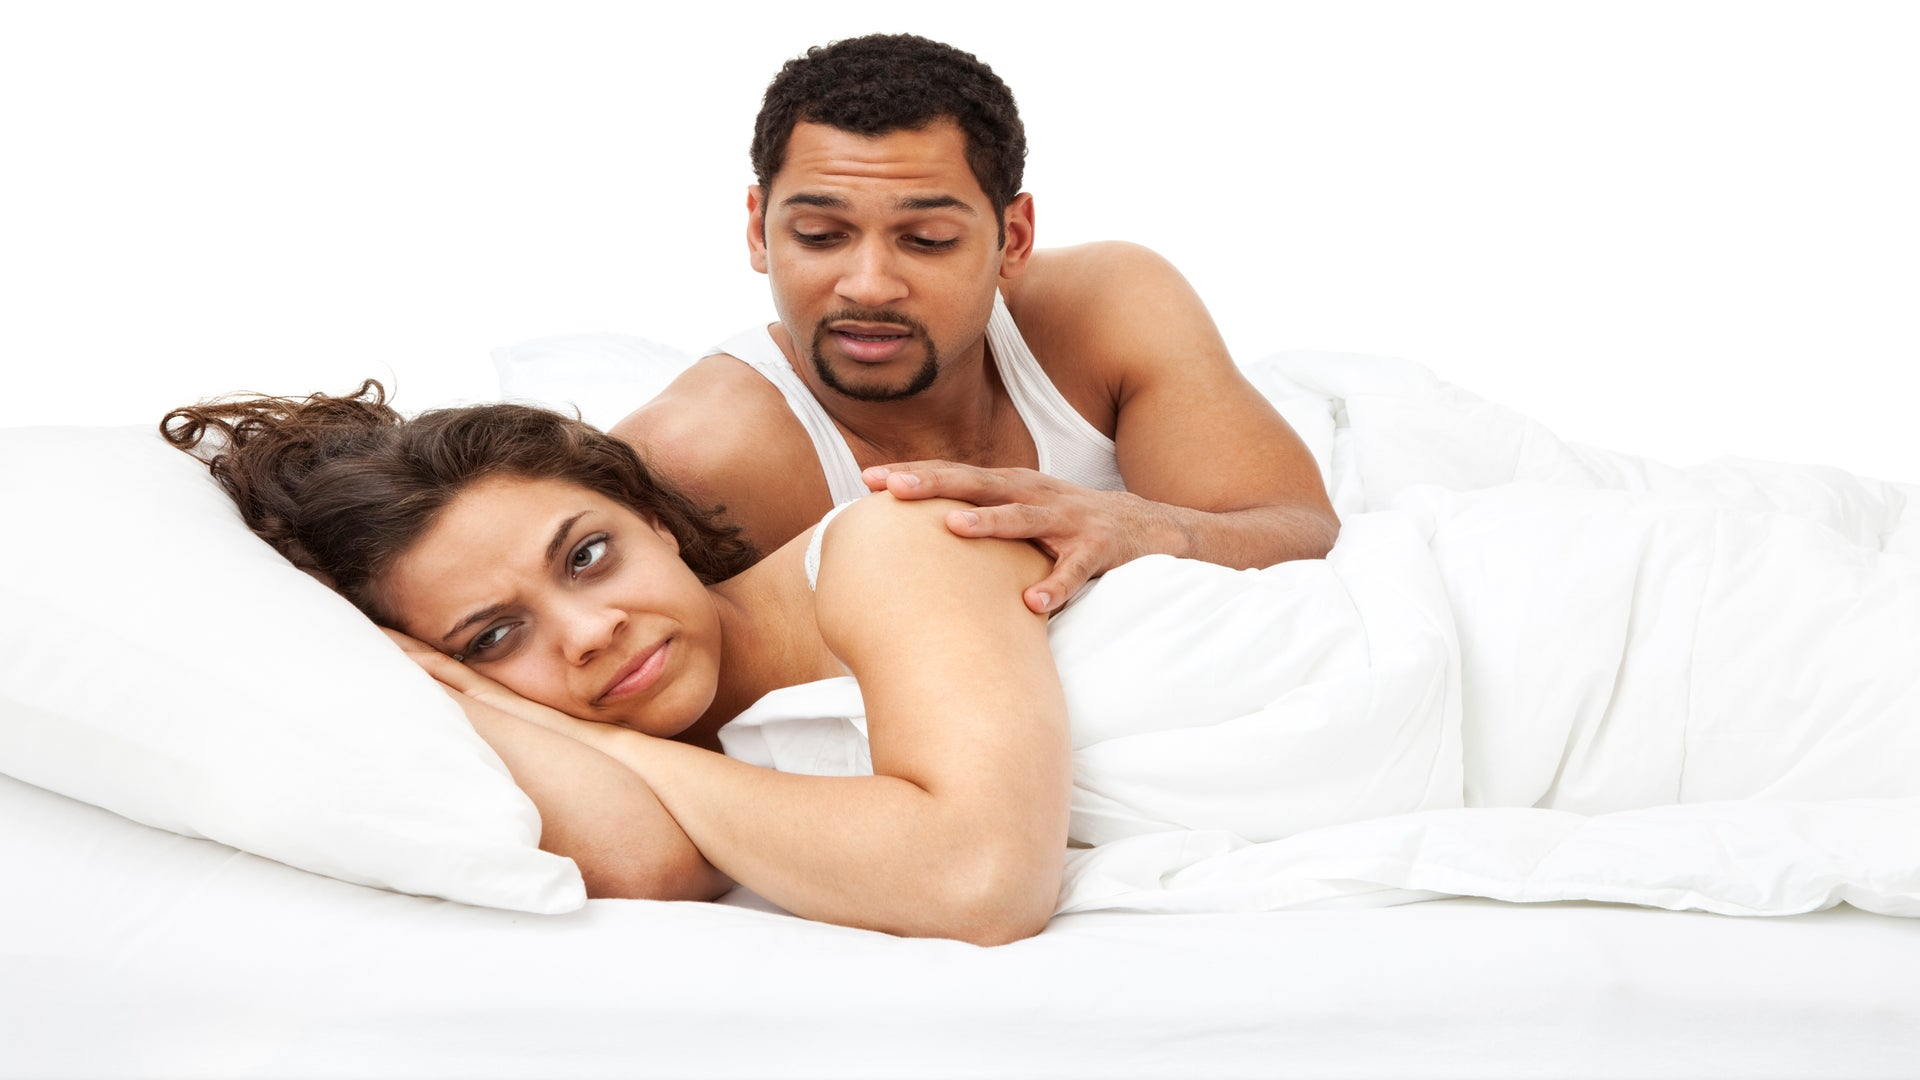 Intimacy Intervention: 'My Man Is Obsessed With Having Sex While I'm On My Period'